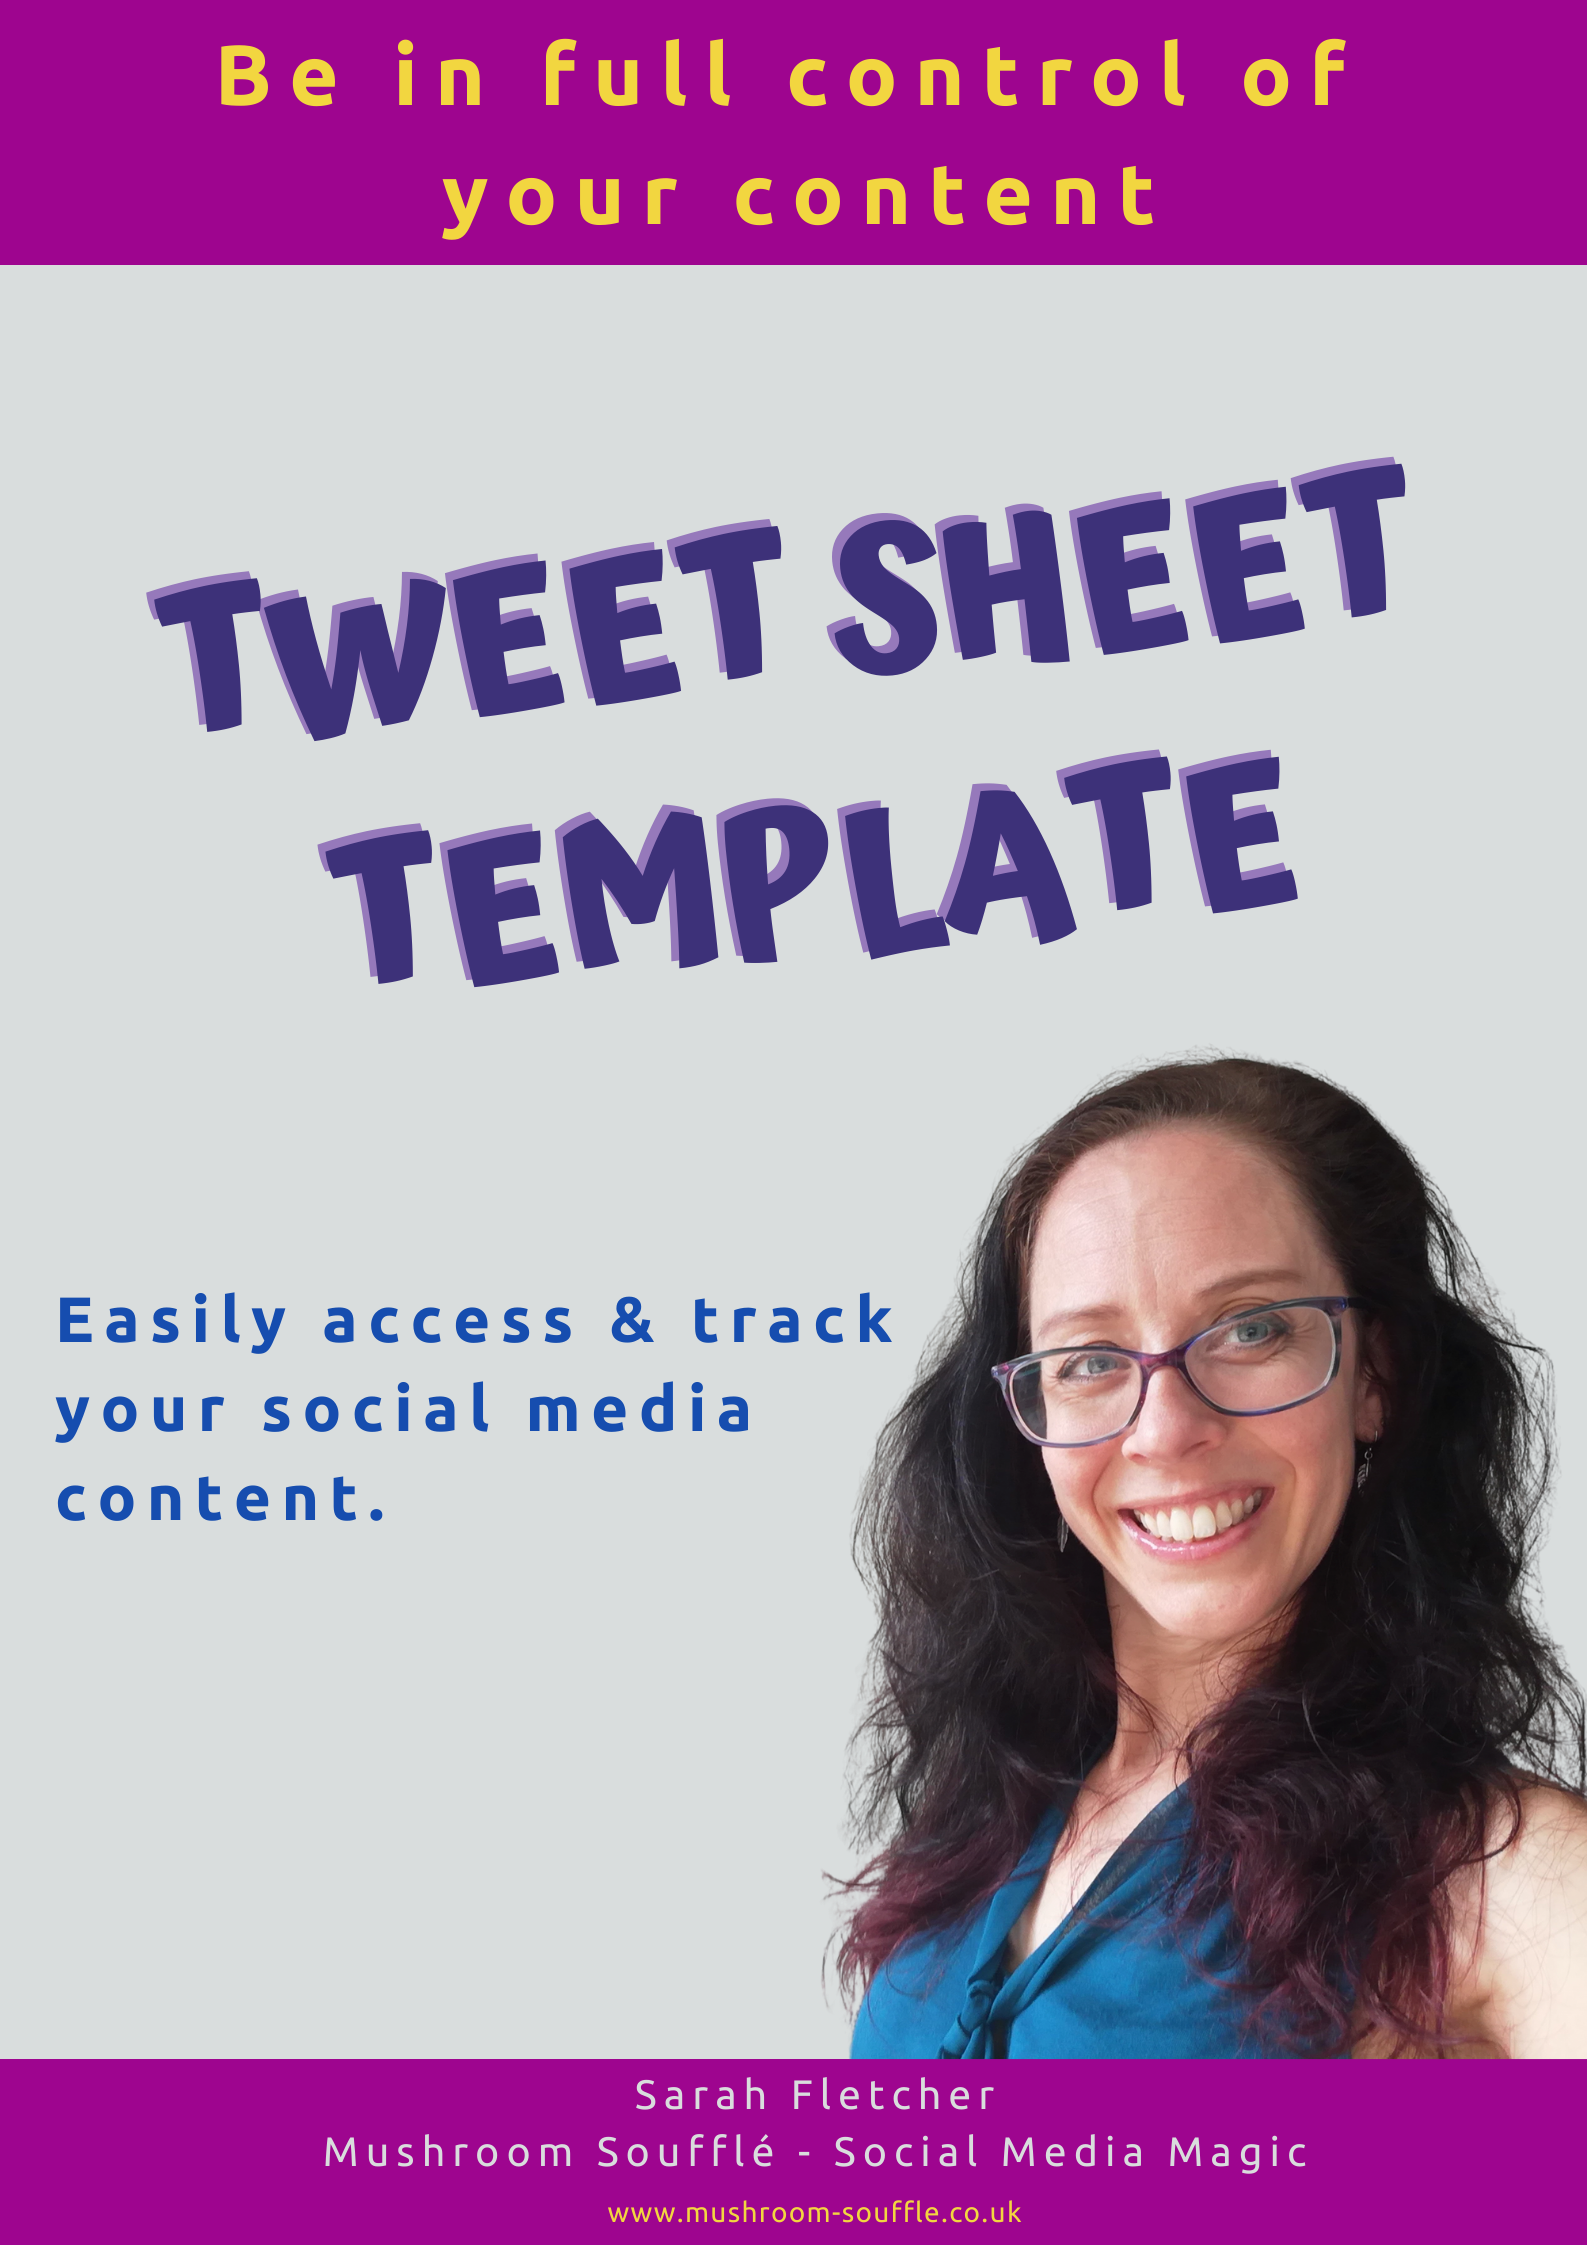 Tweet Sheet Template